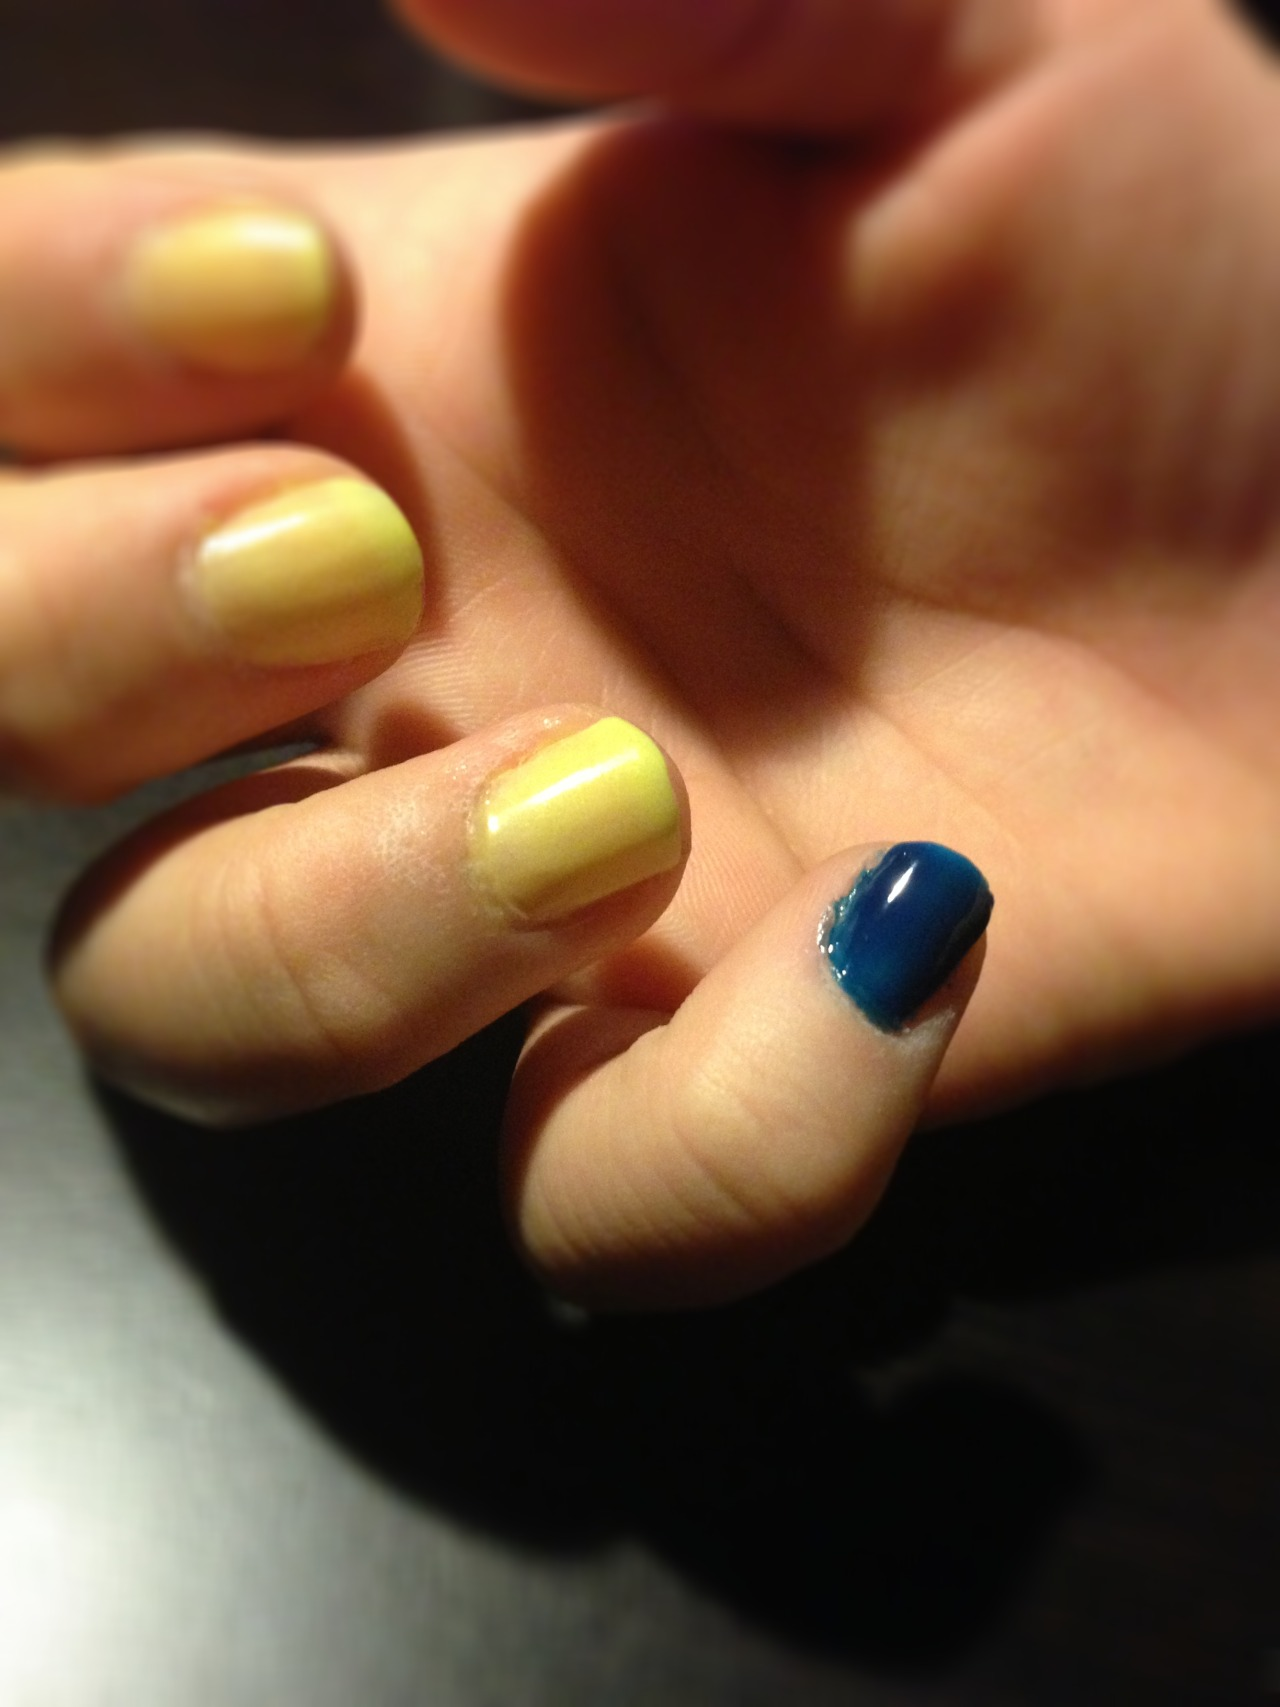 meanstinksblog:  Being mean stinks. Blue Pinky Challenge < Keep your #BluePinkyChallenge submissions coming. And make sure to watch our HOW A DIFFERENCE IS MADE web series to see how Shauna and Morgan, two high school girls, were able to get their community to support their own challenge: http://on.mtv.com/YW6Um7